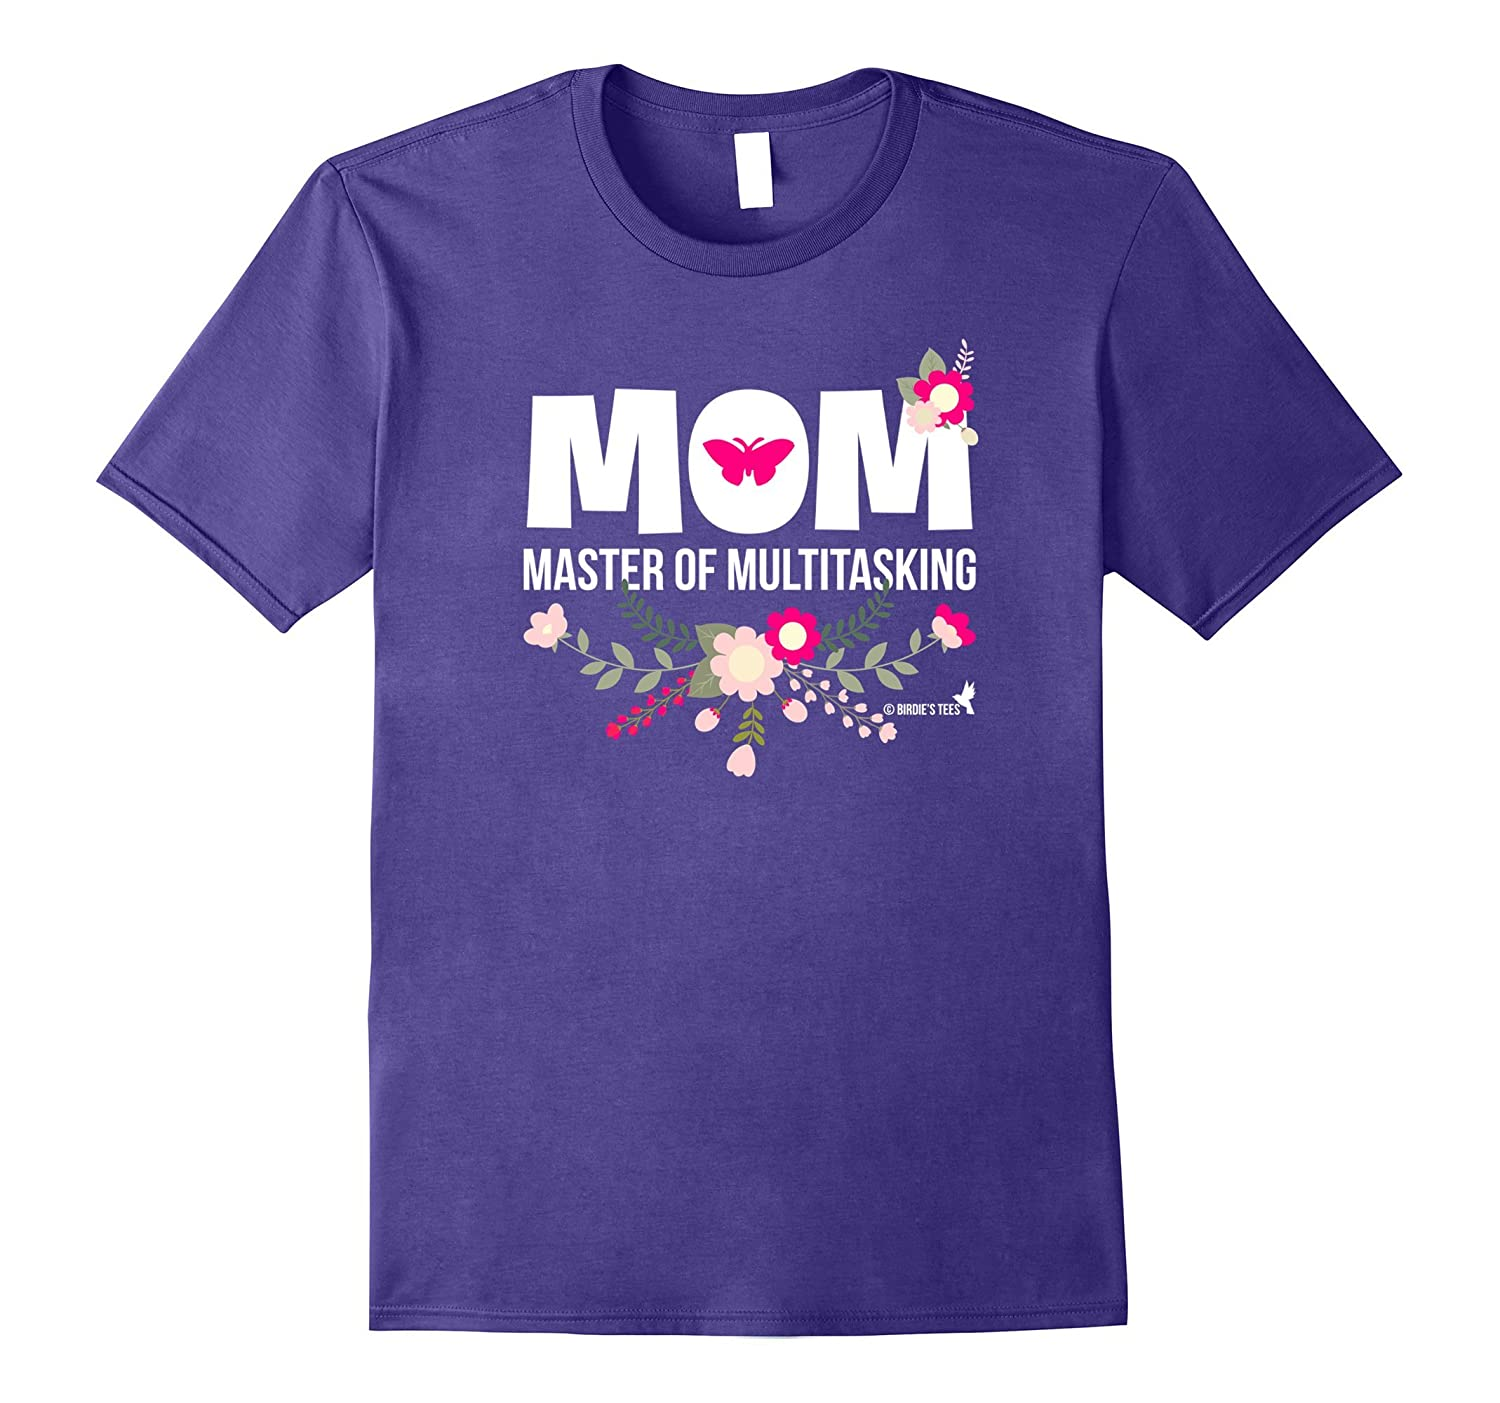 Mothers Day T-Shirt for Mom Master of Multitasking-TD